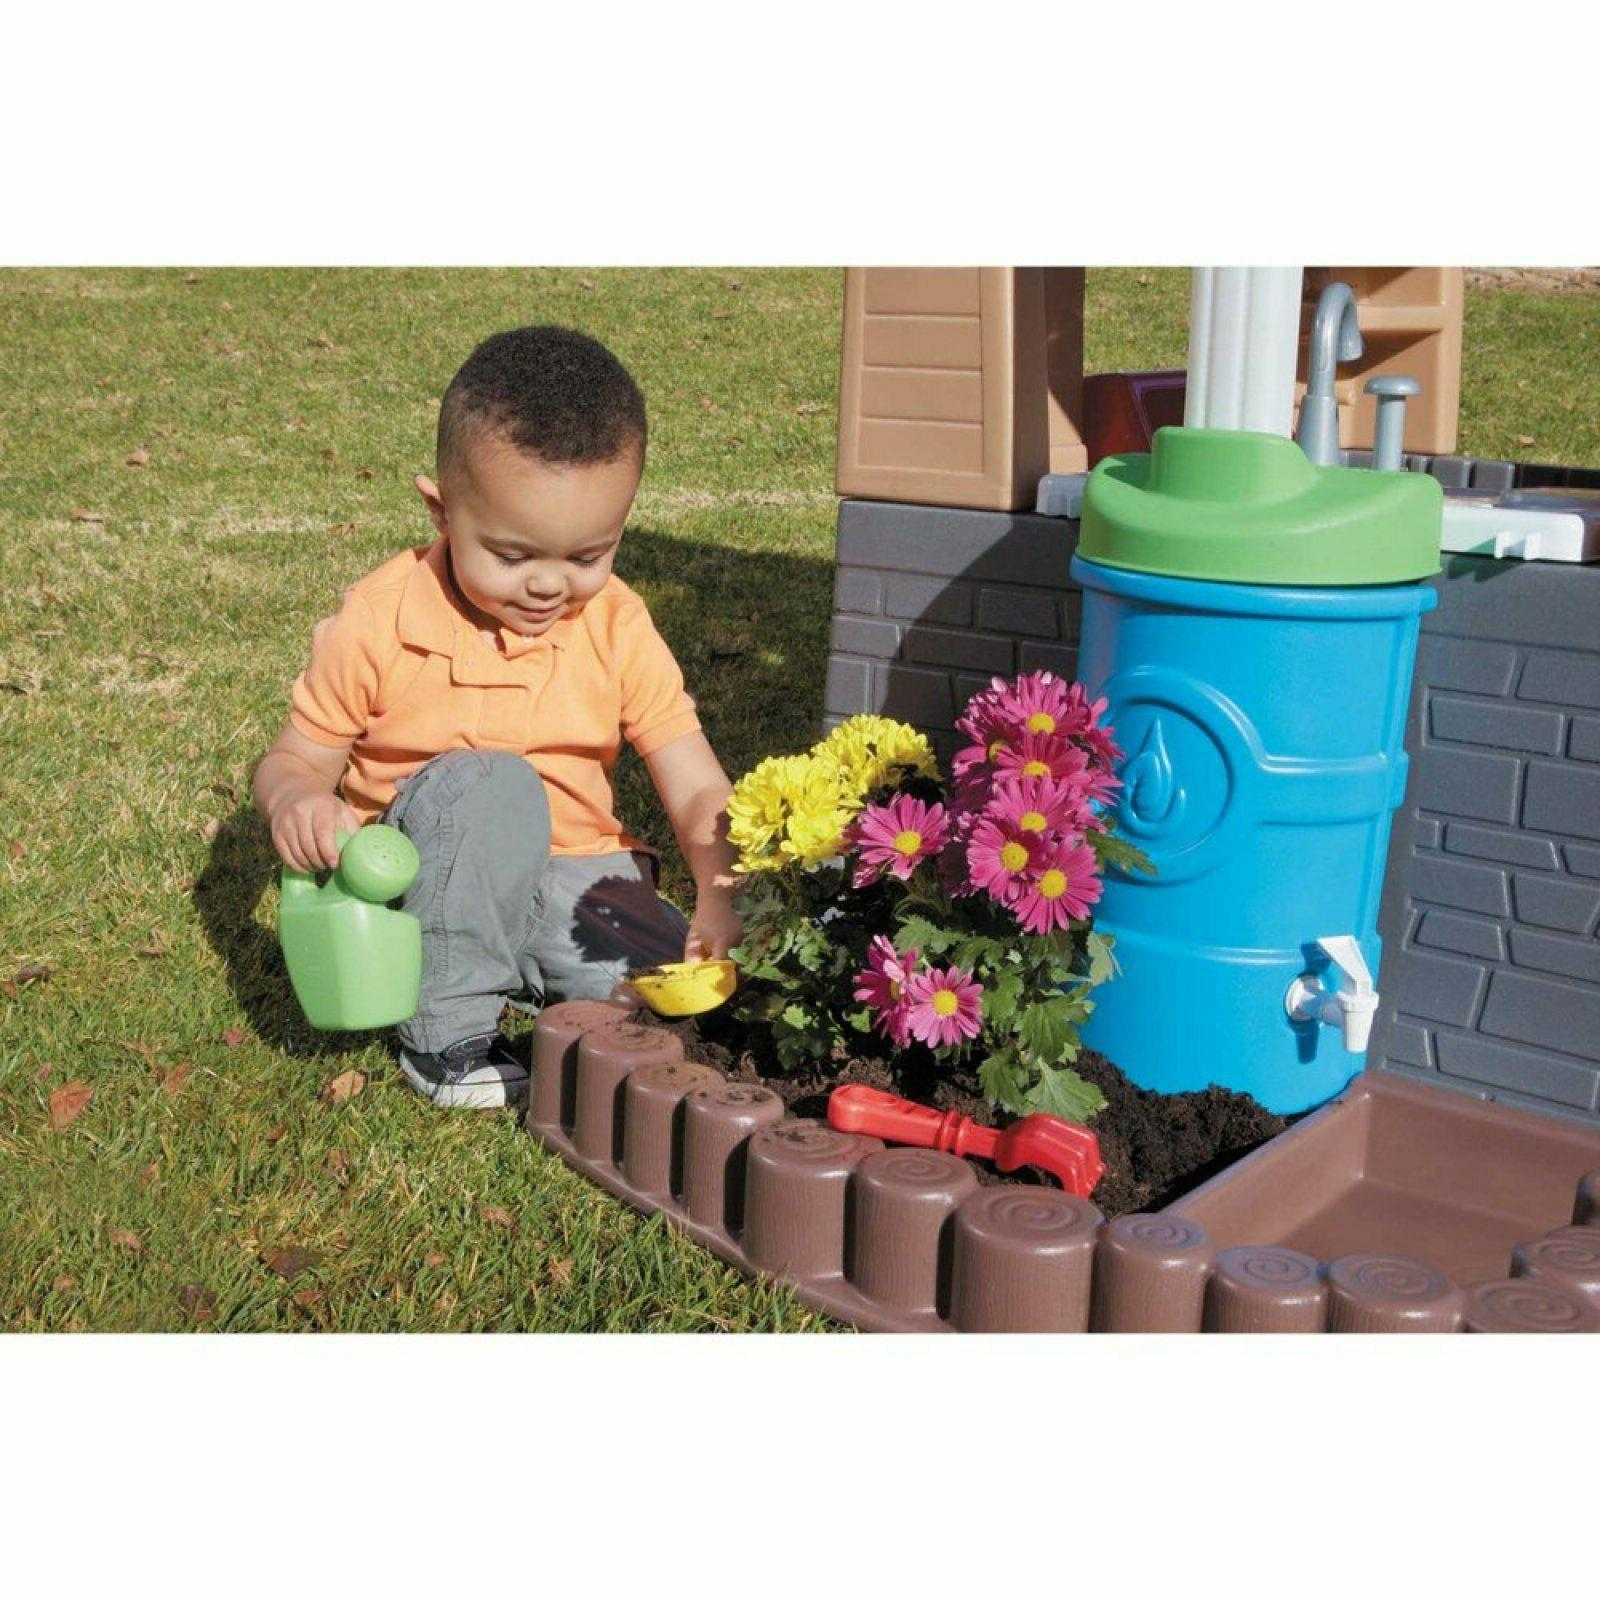 Playhouse Light Kids Toy Outdoor Fun Size Durable